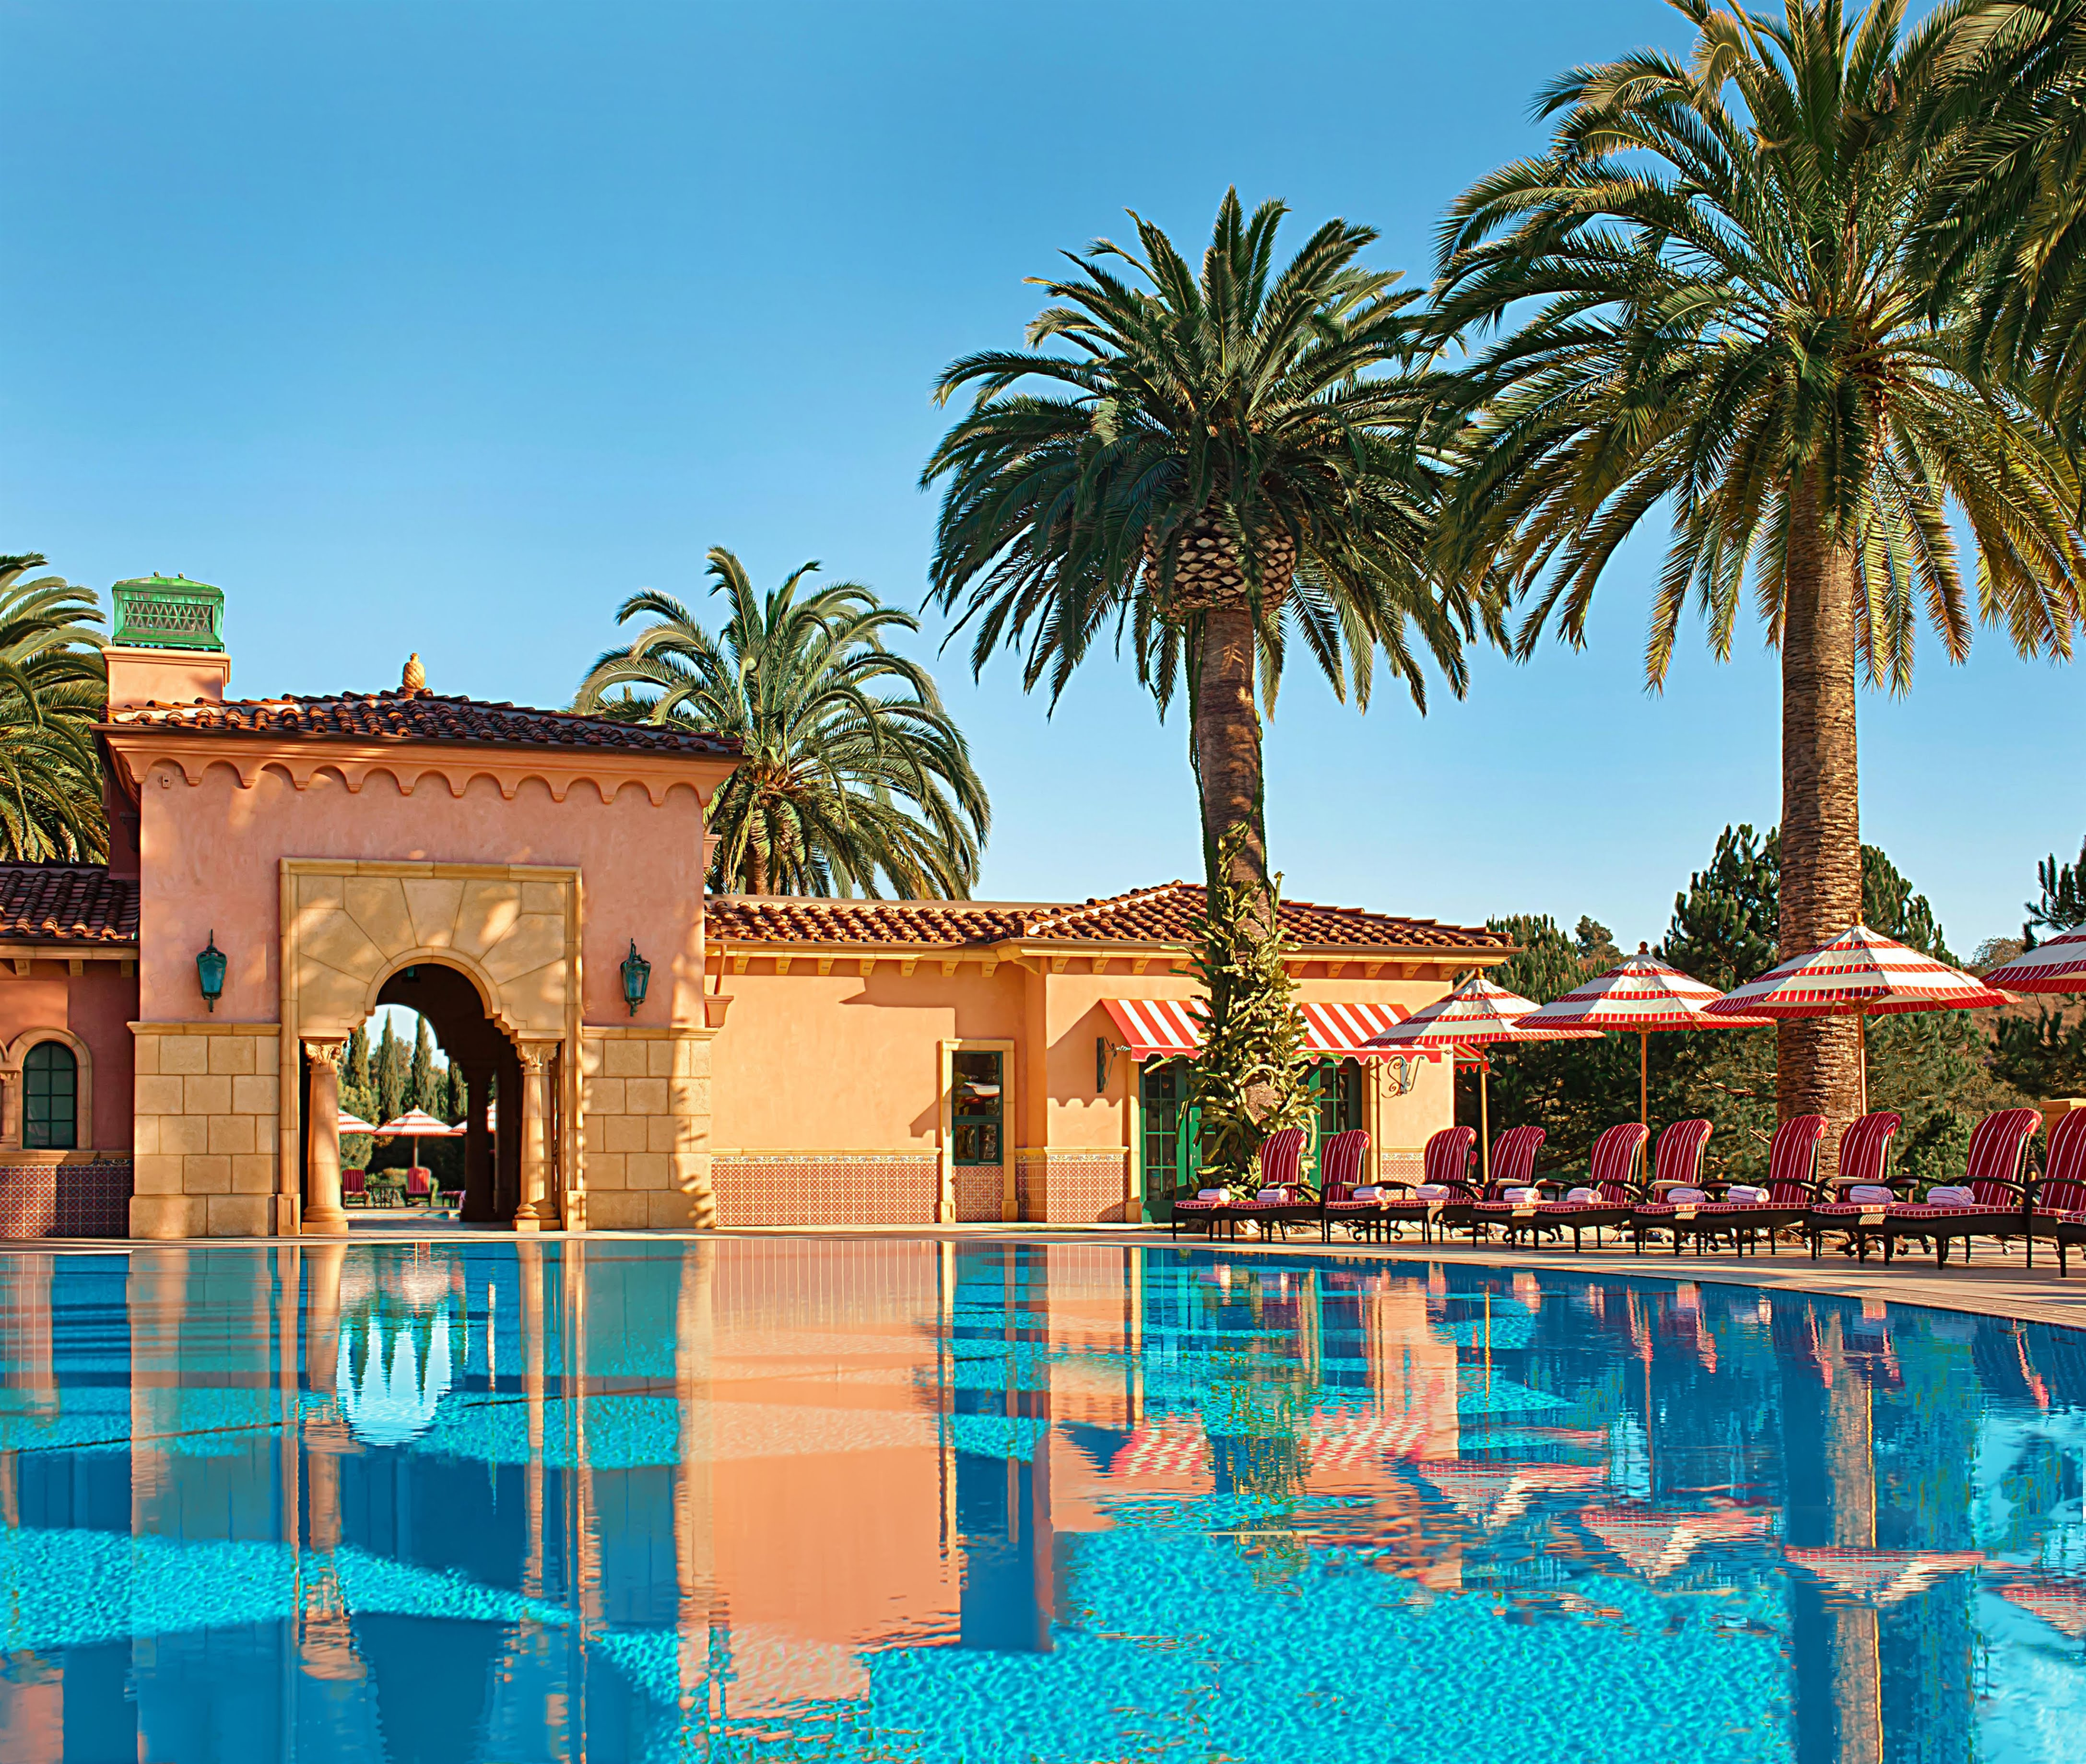 View of the main pool area with palm trees at Fairmont Grand Del Mar, one of the best resorts in San Diego.